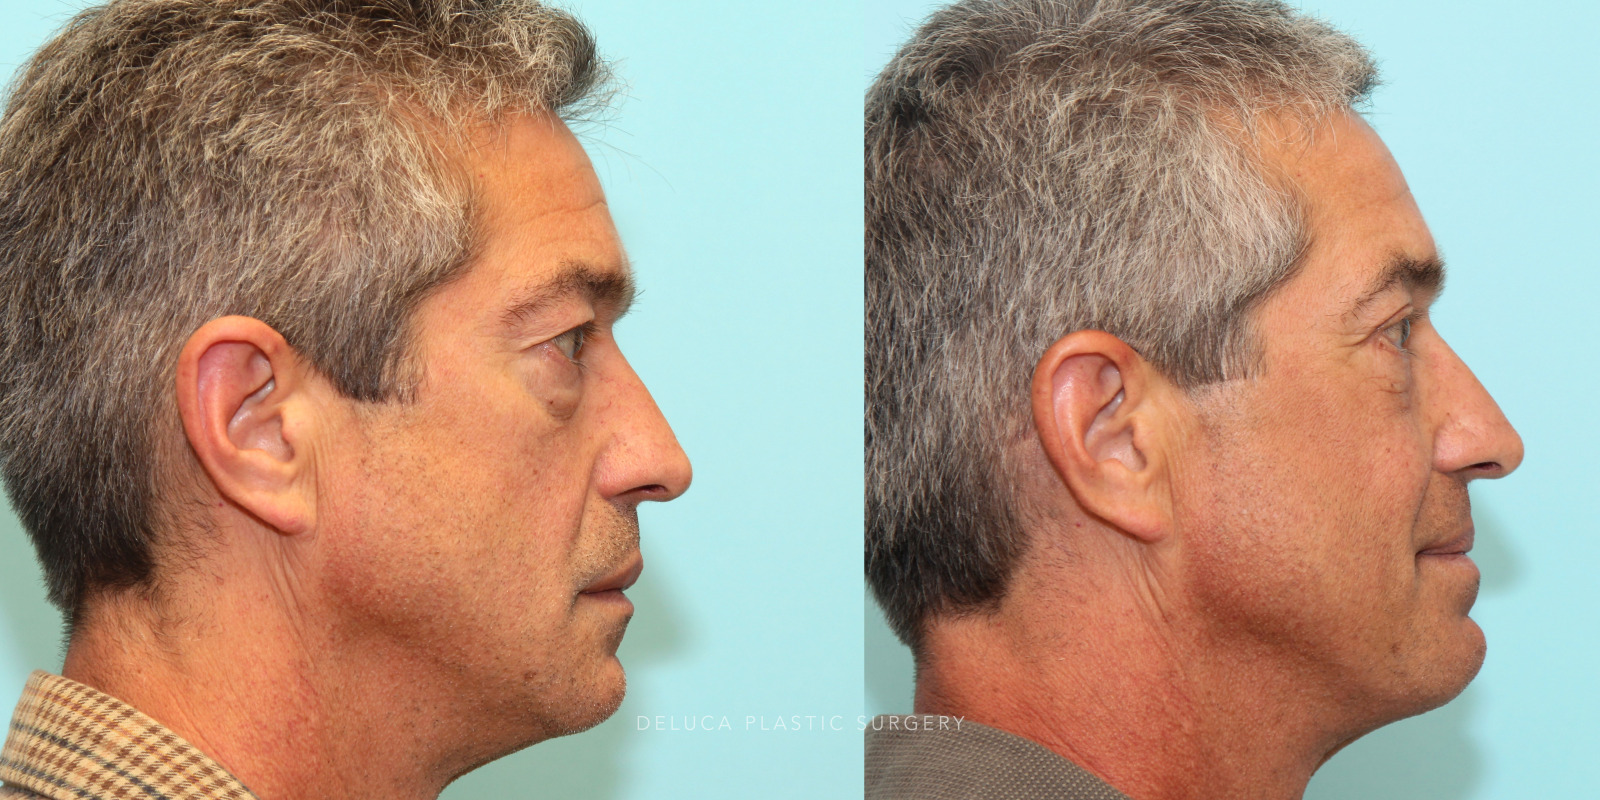 55 year old Upper and Lower Eyelid Blepharoplasty (Eyelid Lift) with Fat Redraping and Mid-face Implants